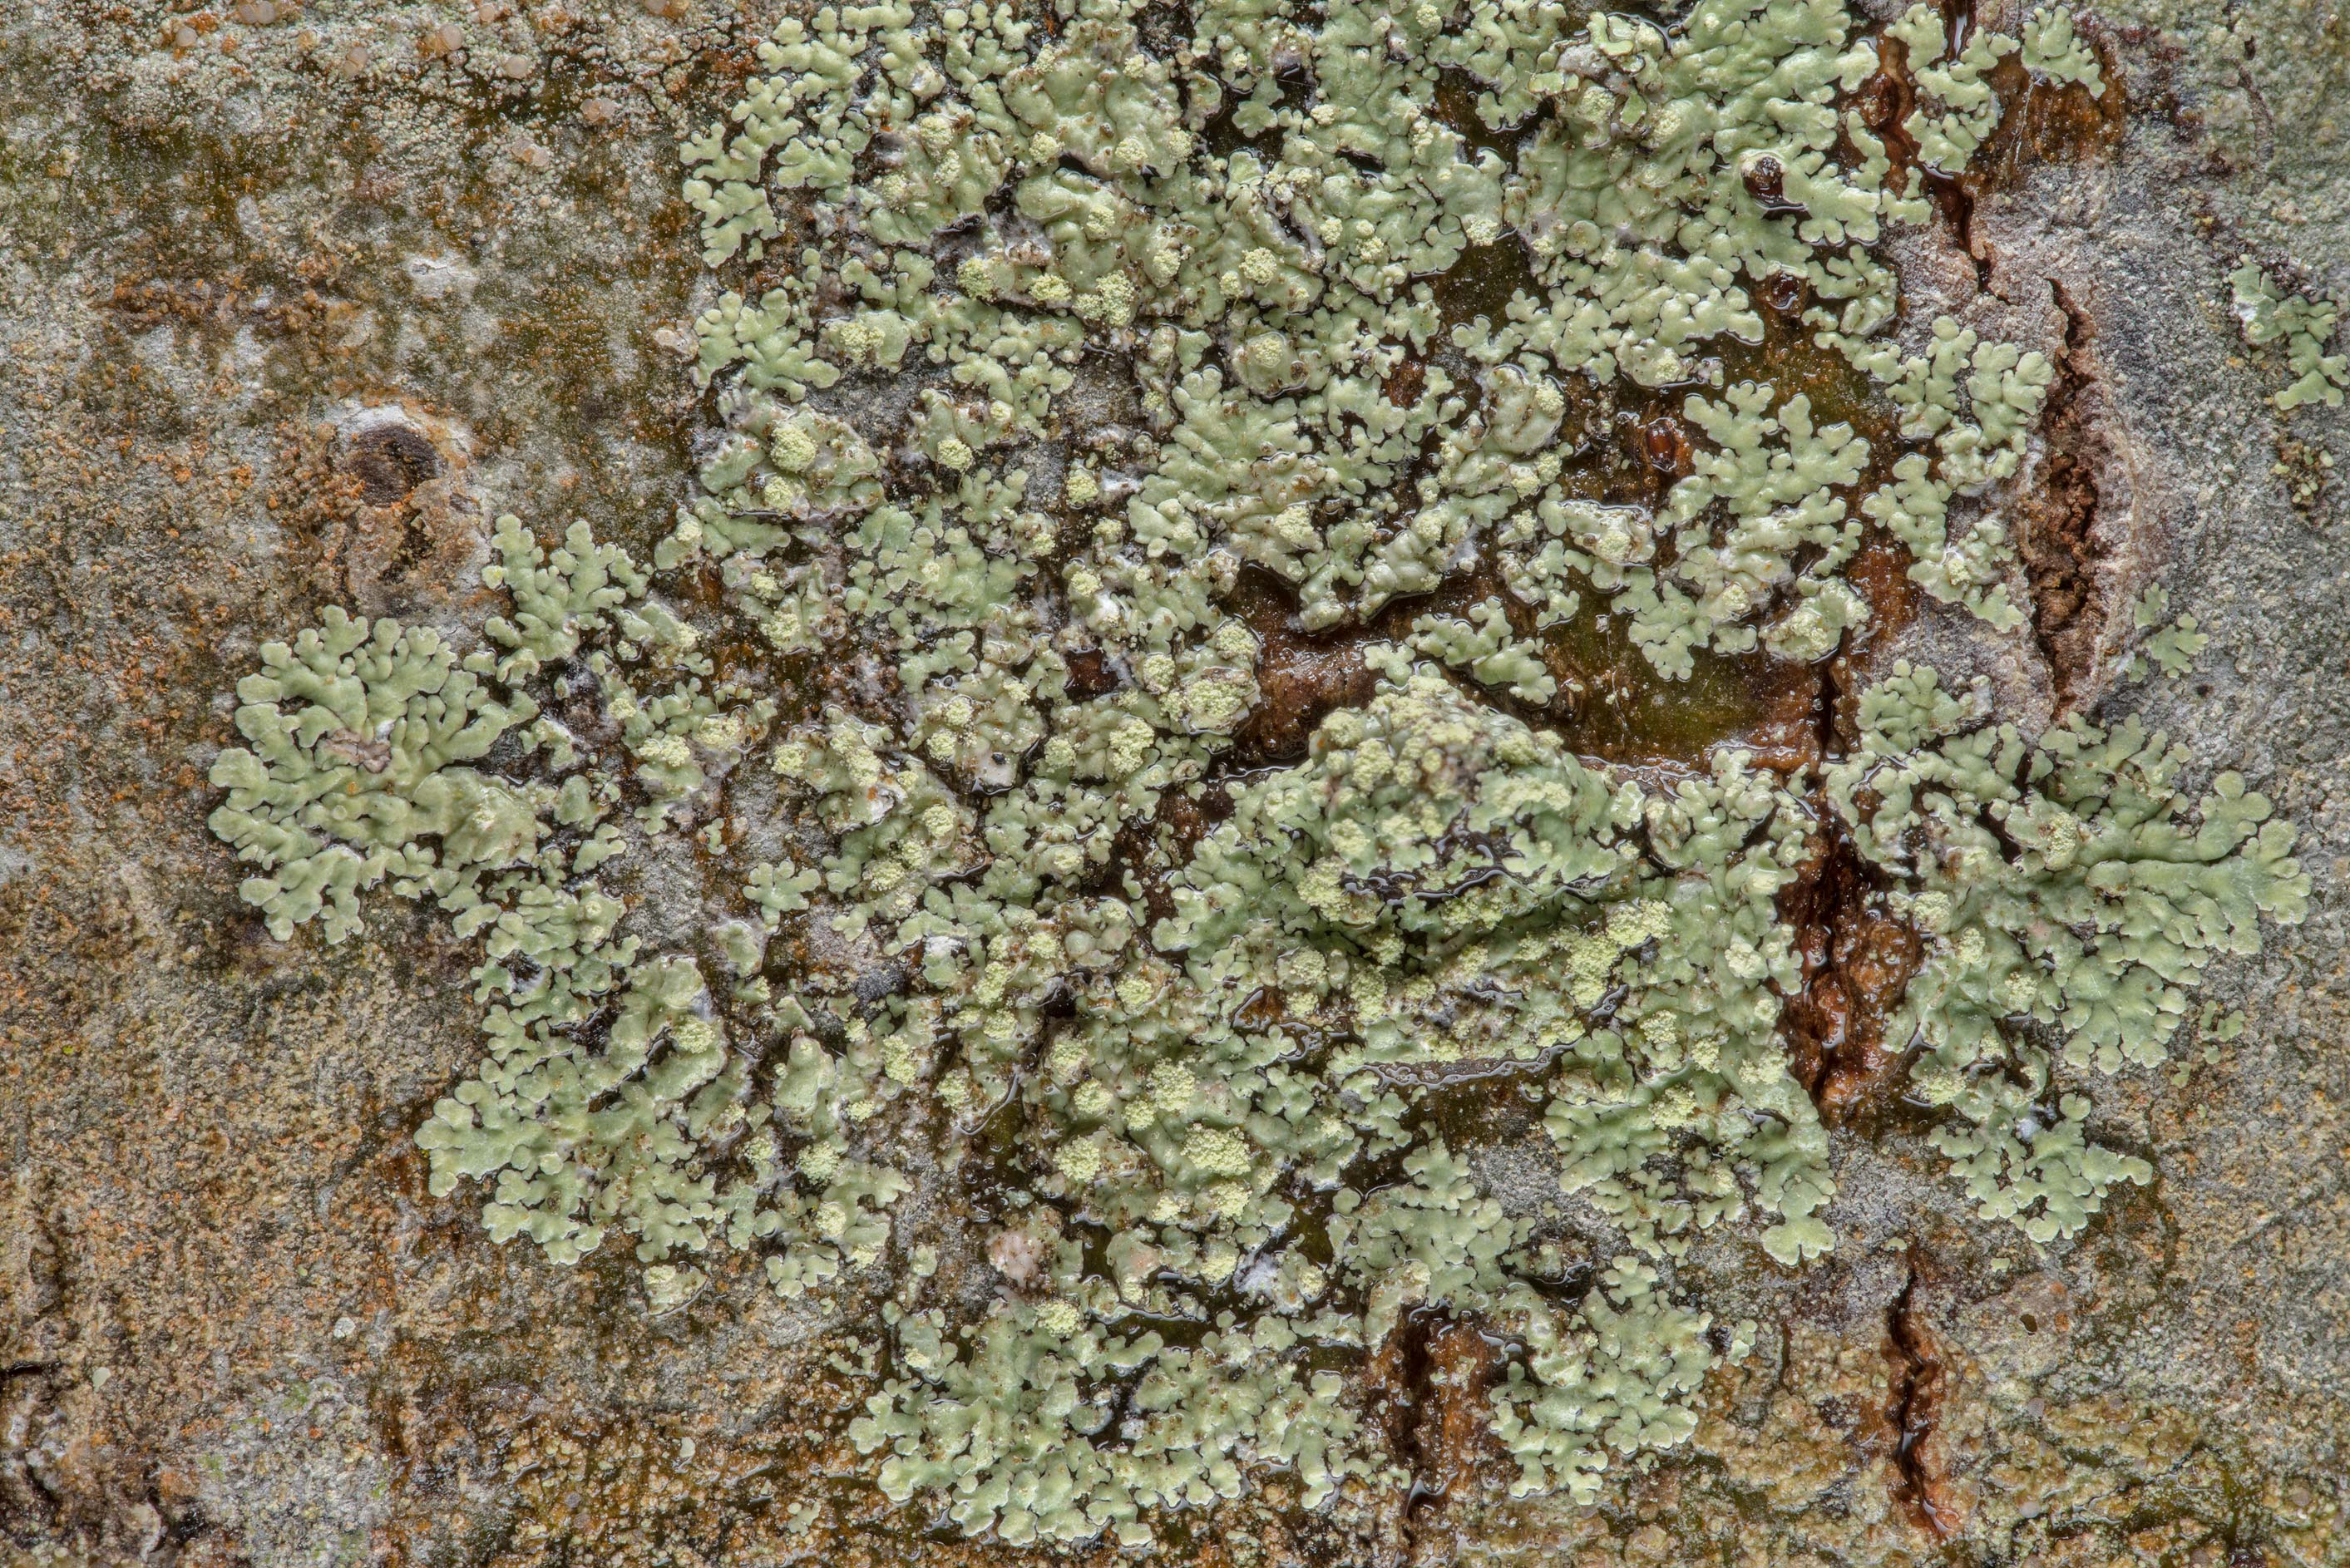 Pyxine lichen on a tree in Lick Creek Park. College Station, Texas